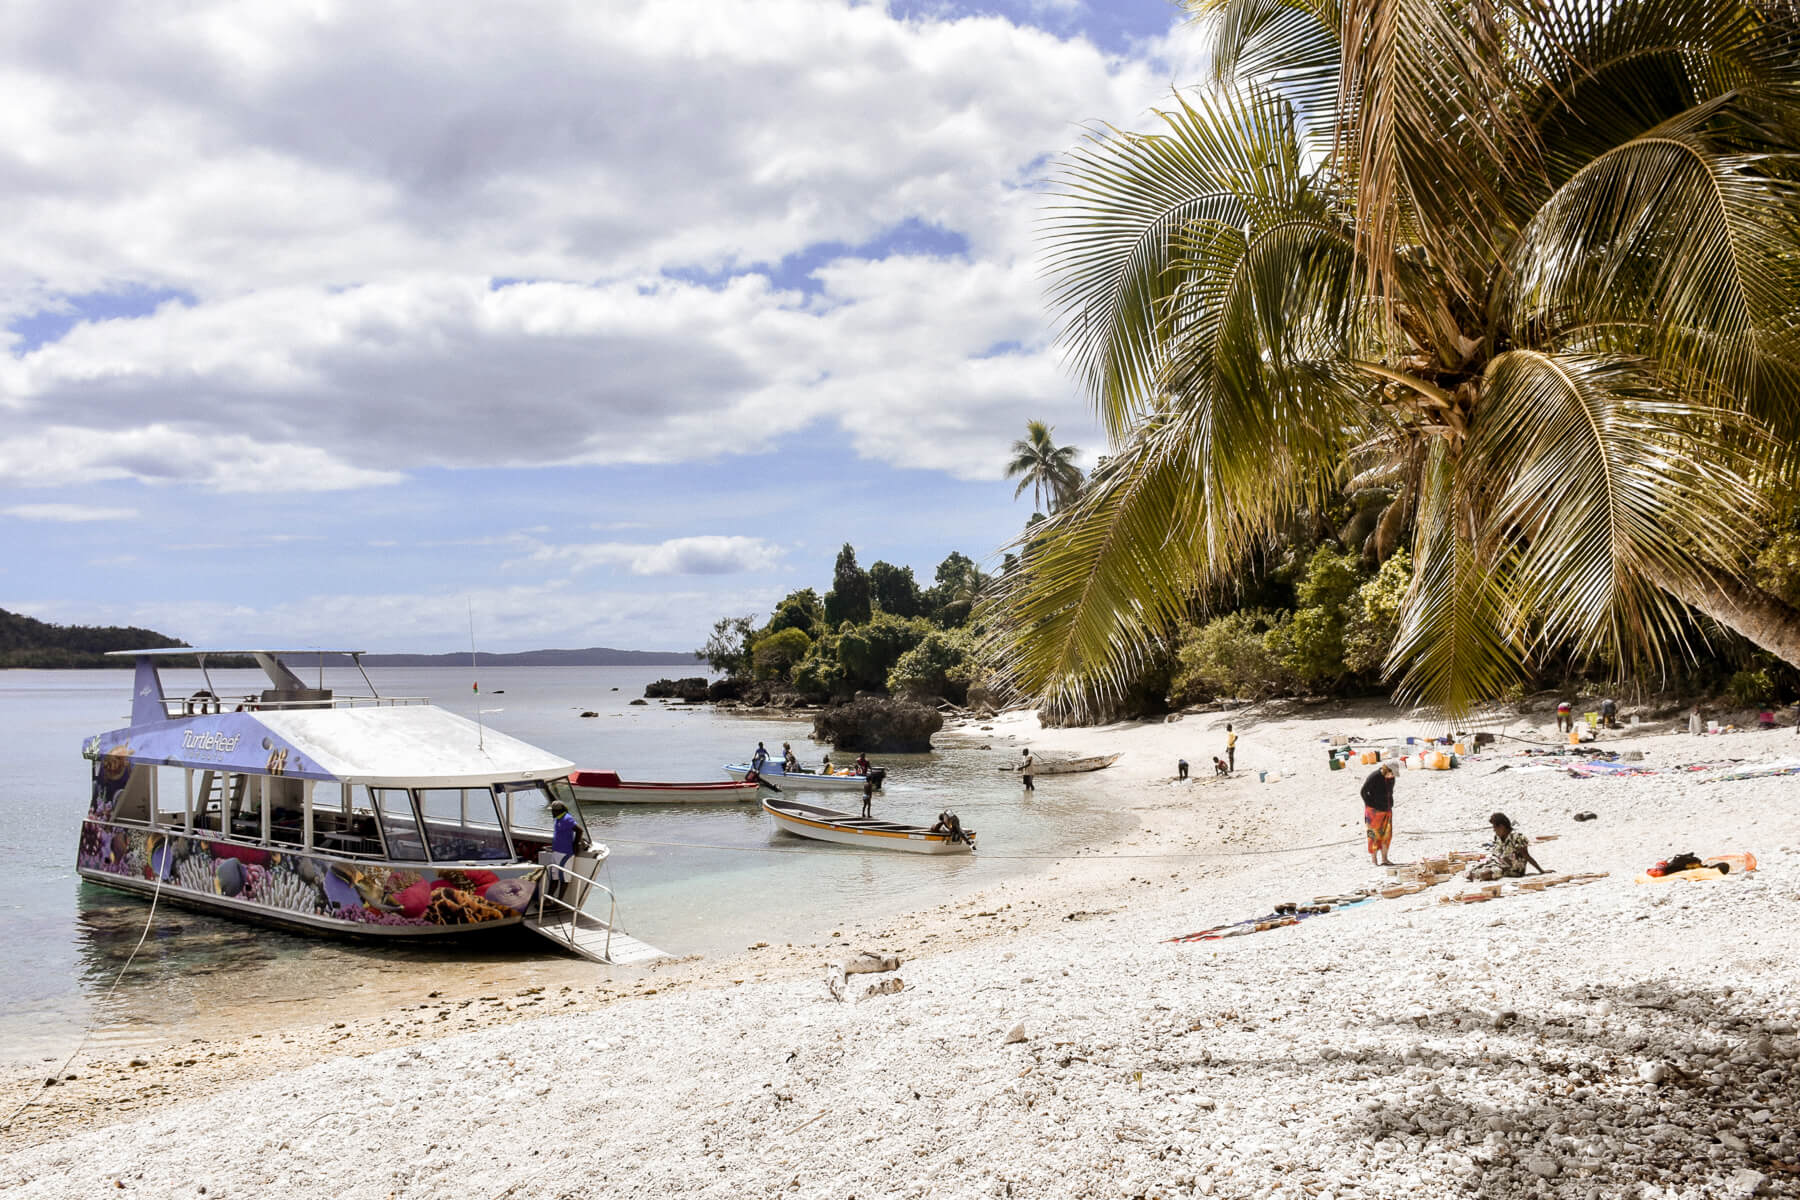 Local beach with palm trees and boats on the water